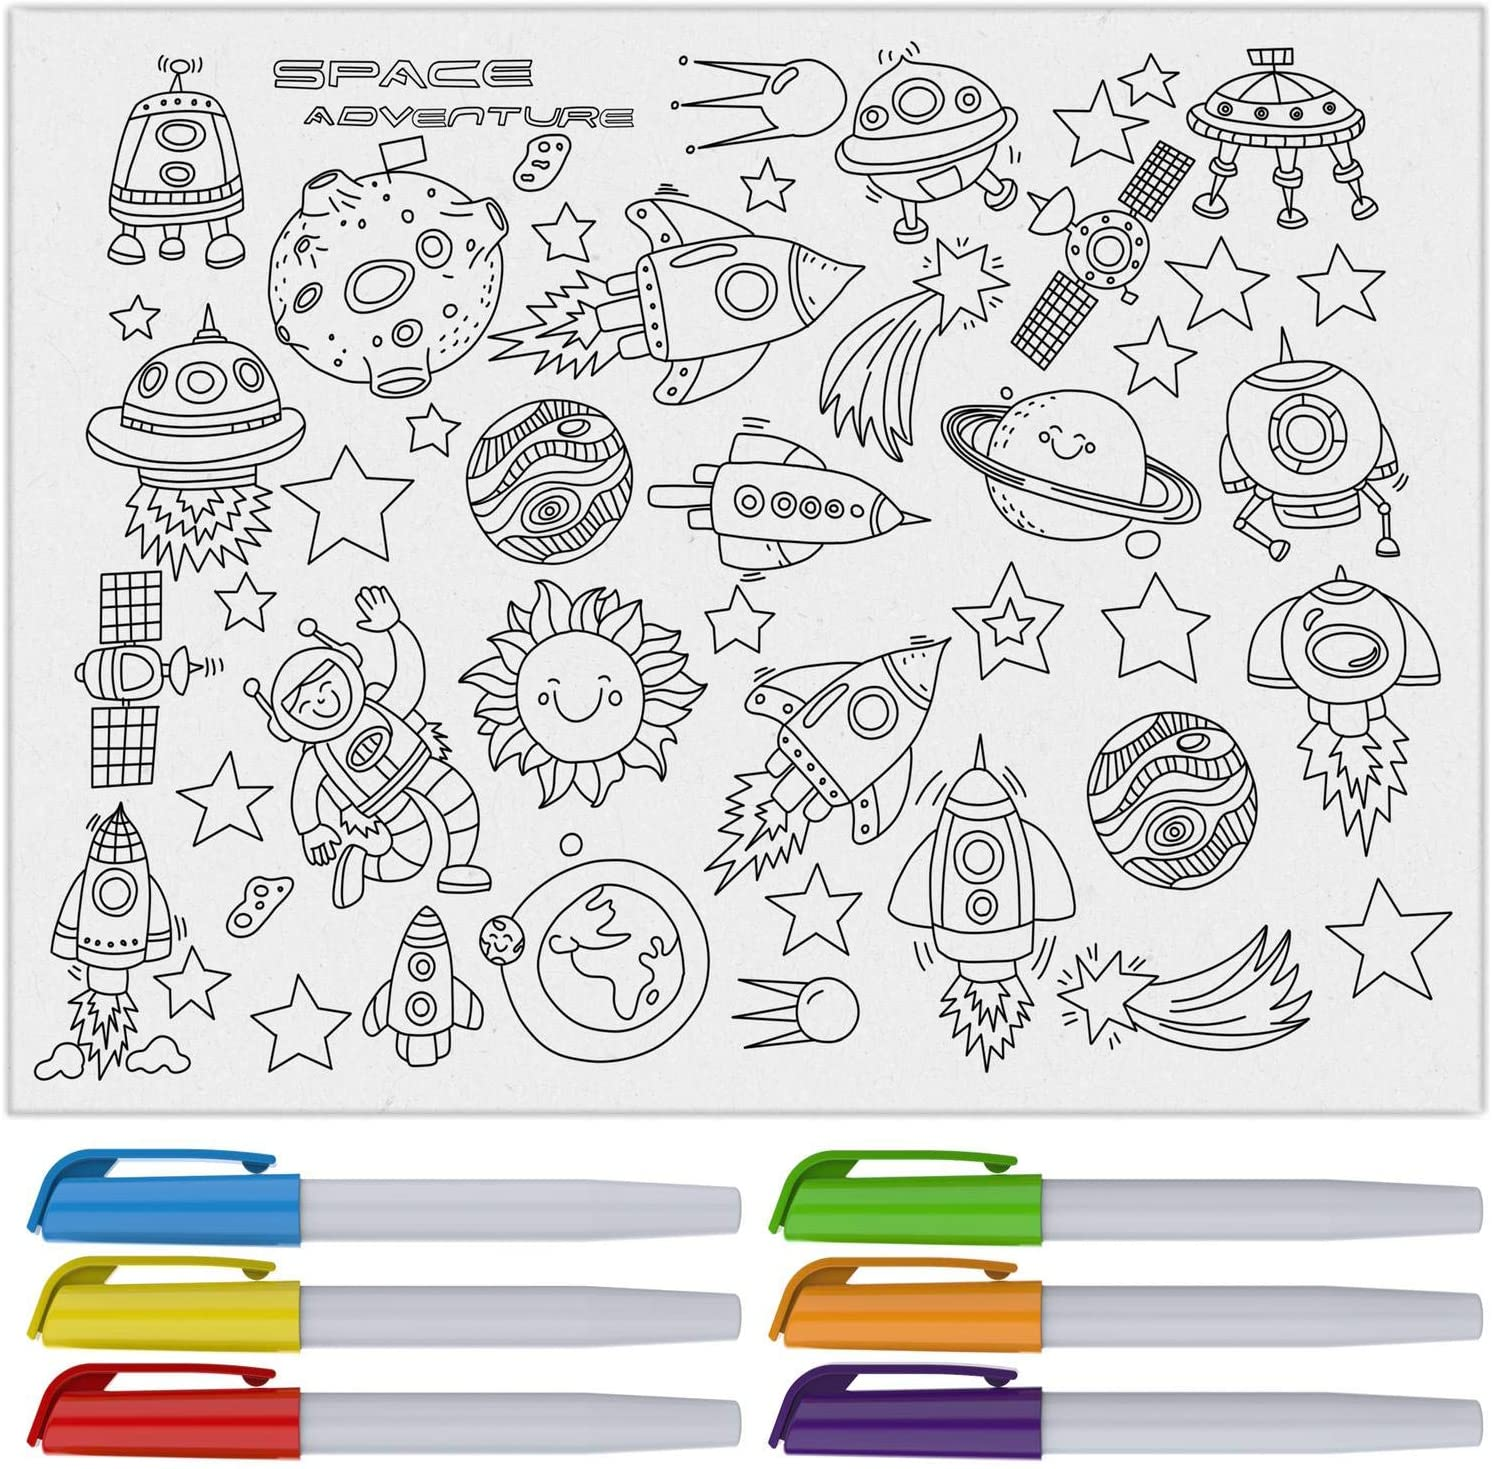 """Reusable Silicone Coloring Mat for Kids, 16"""" x 12"""" Dry Erase Tablecloth Paper – Kit Includes Washable Markers – Outer Space Astronaut Adventure Theme with Planets & Spacemen"""